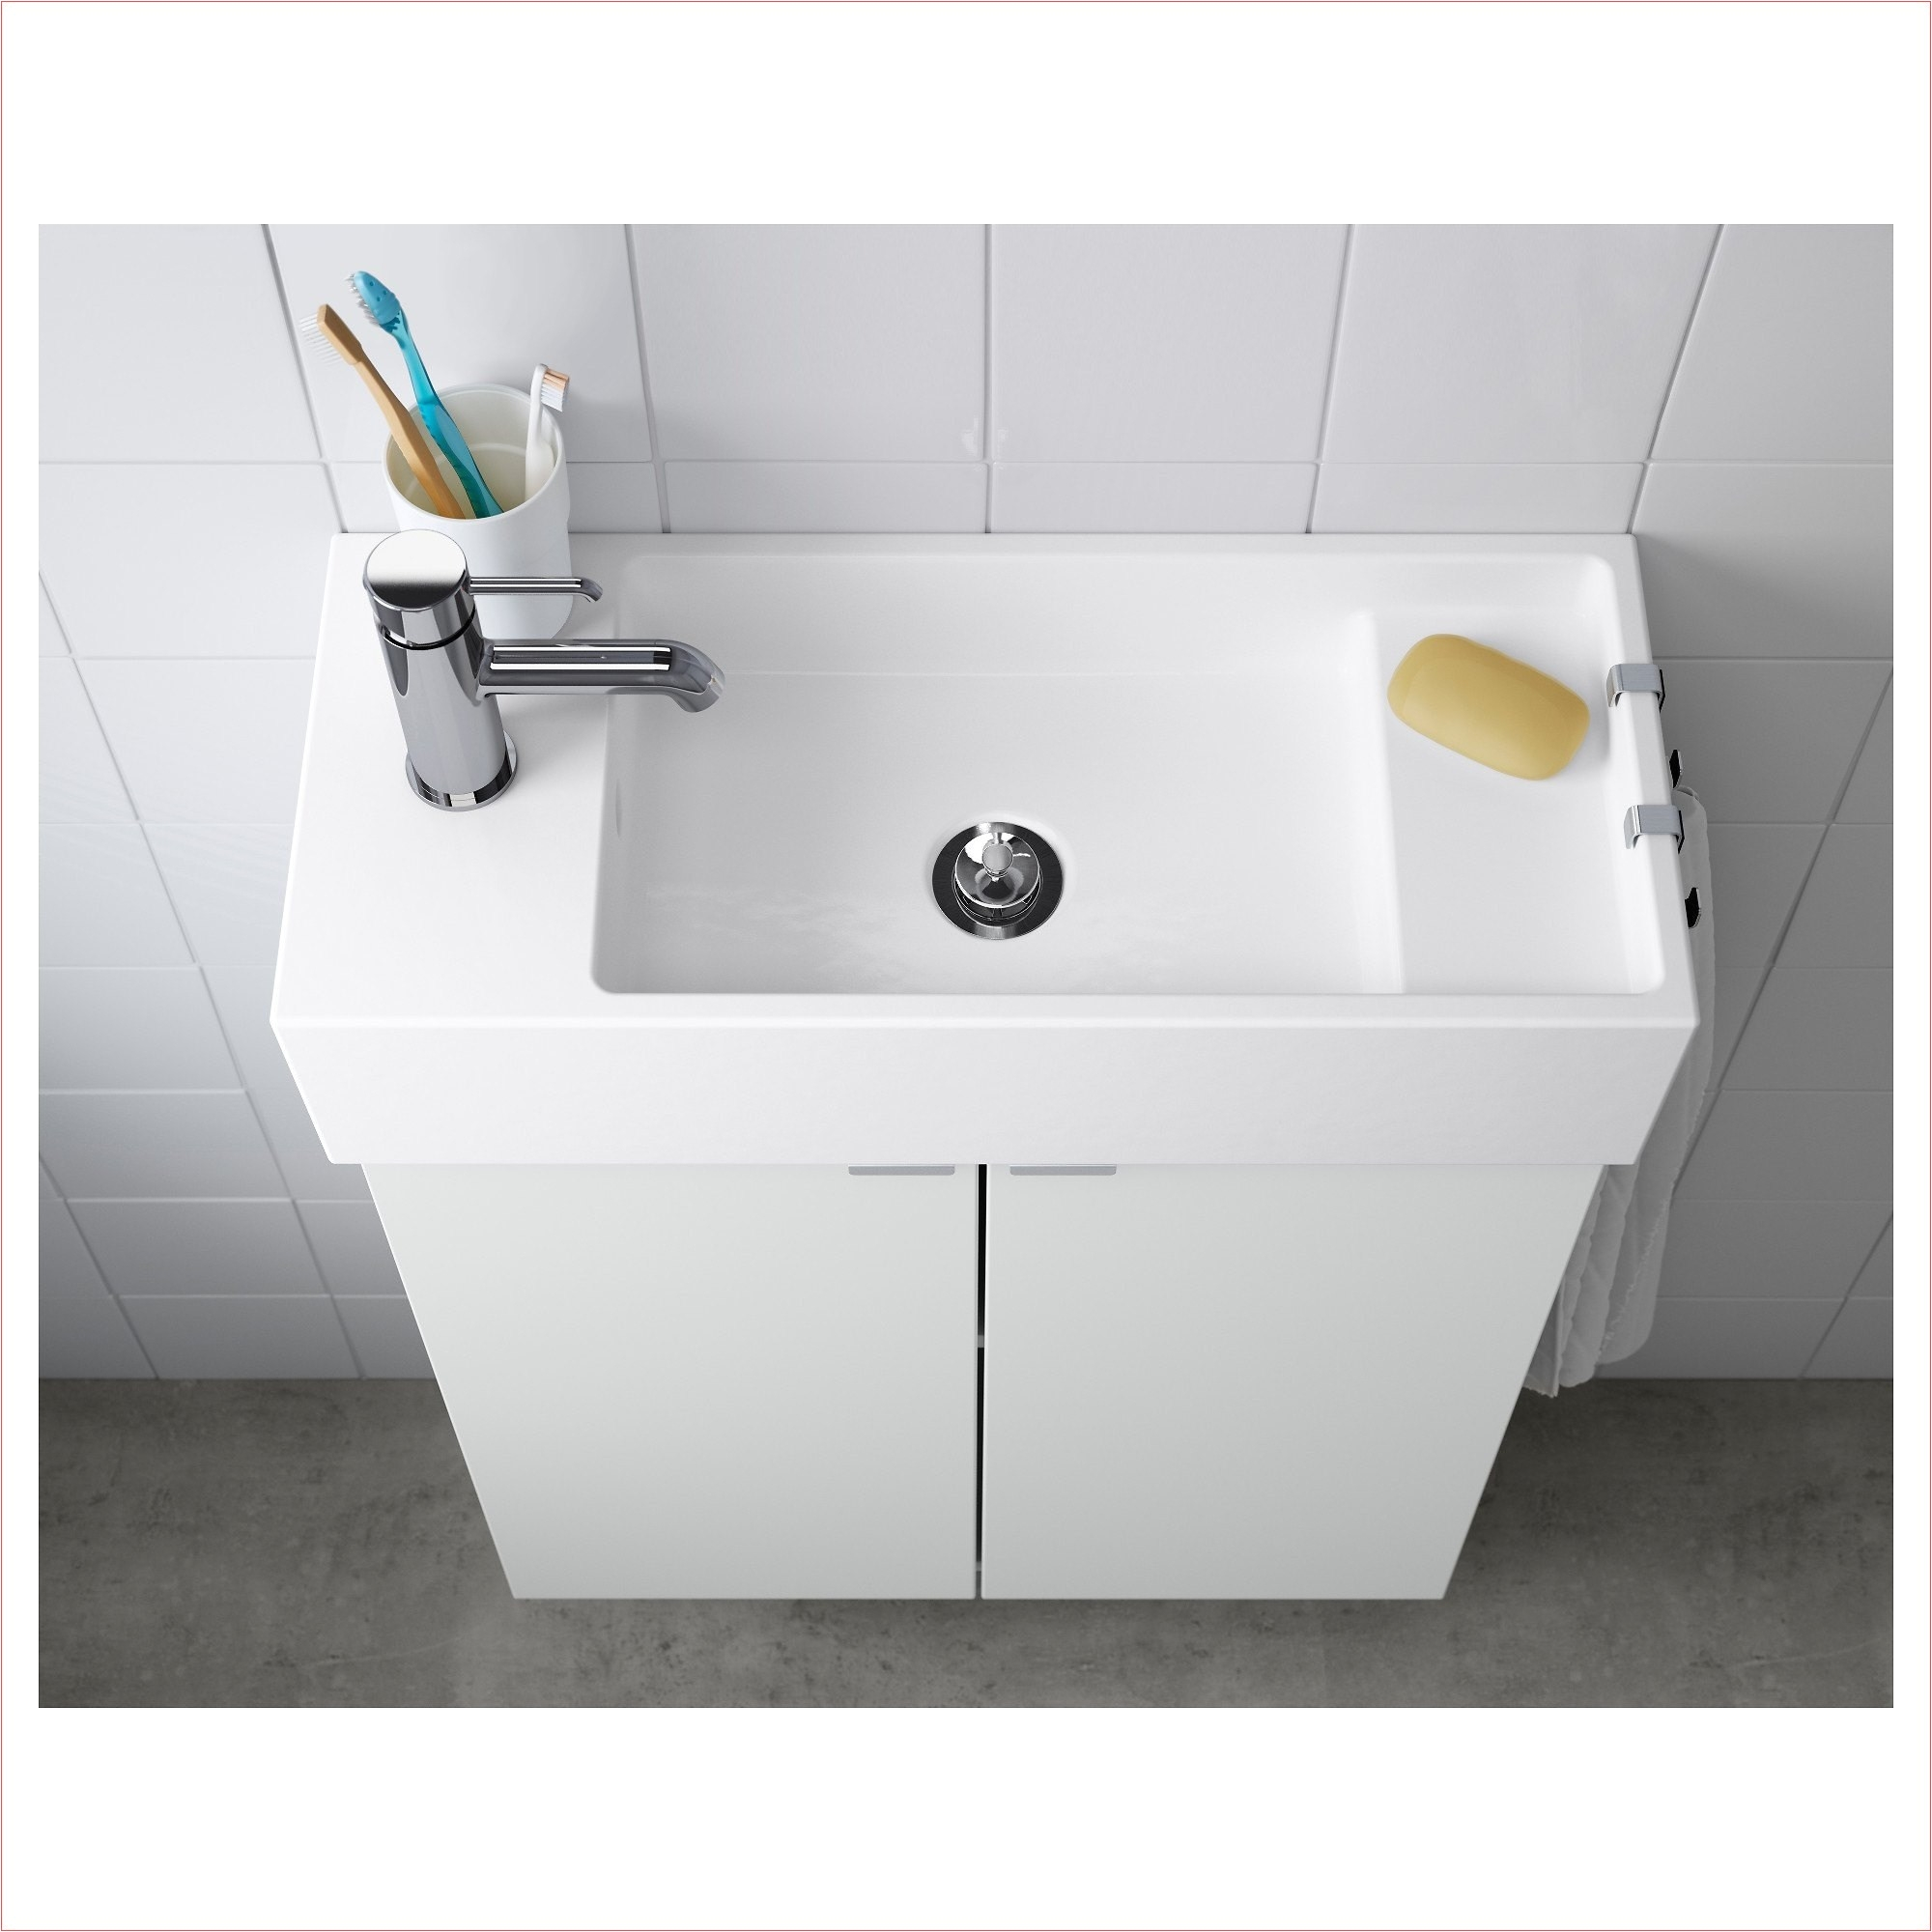 Bathroom Accessories Online Use Of Bathroom Accessories In Modernizing Your Bathroom Richards F1